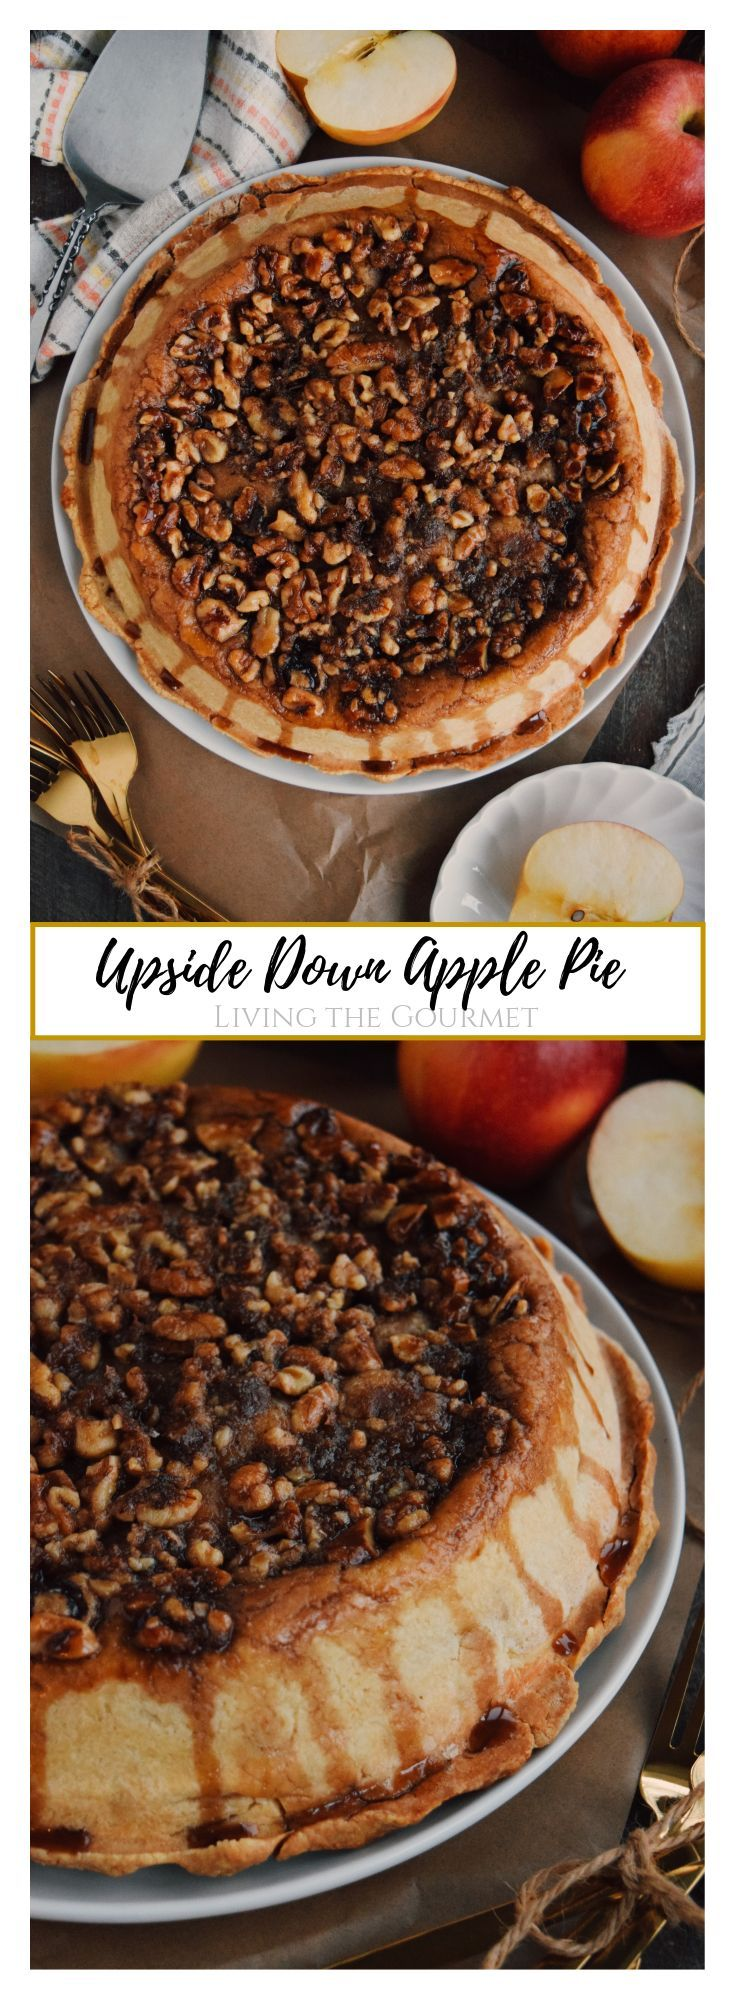 Upside Down Apple Pie Recipe in 2020 Dessert recipes